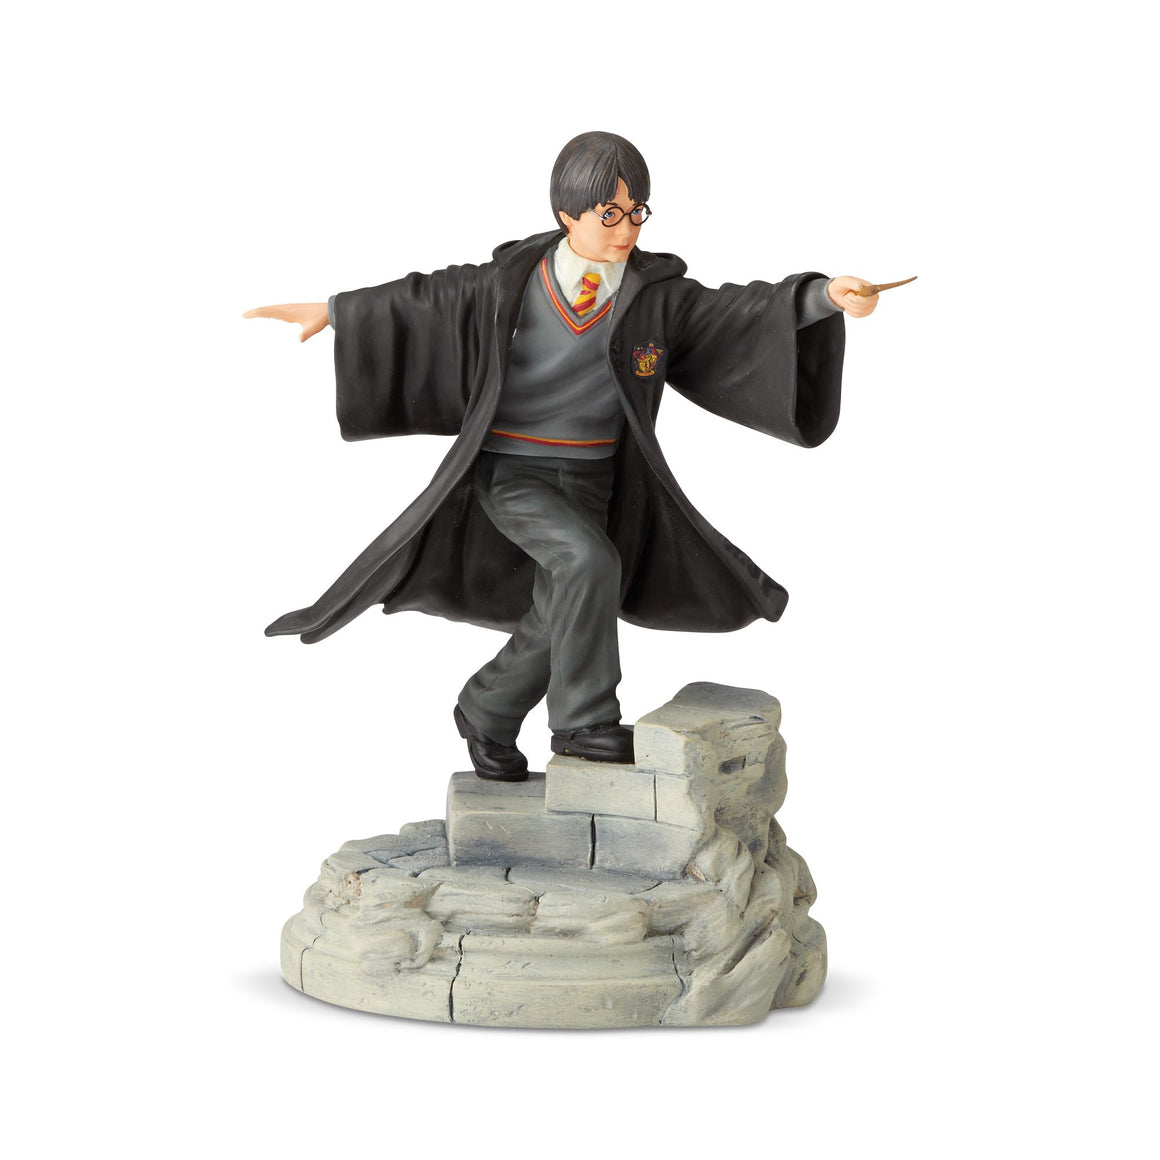 Harry Potter Year One Figurine - The Wizarding World of Harry Potter